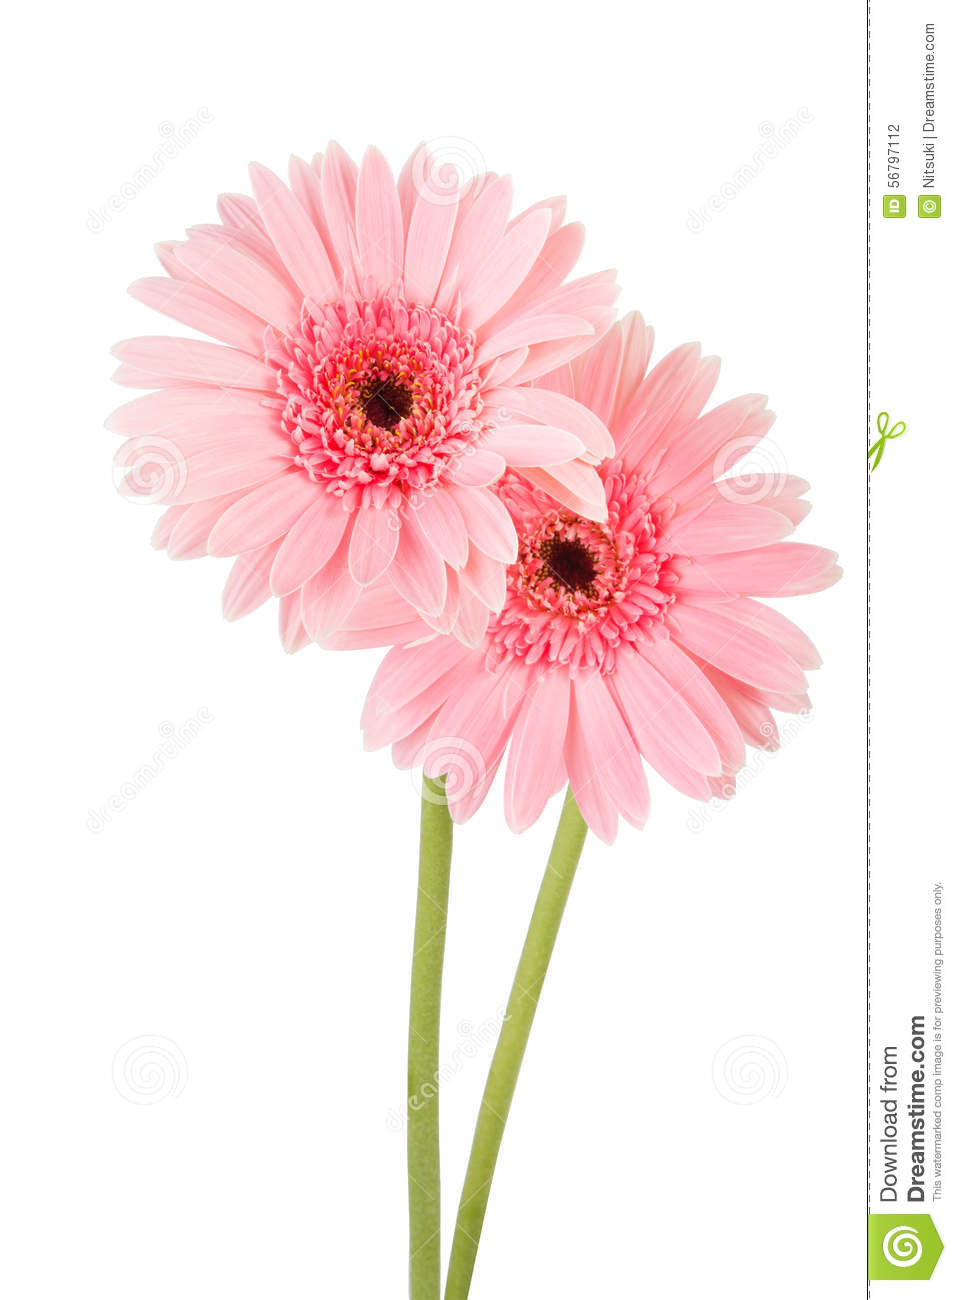 Pink gerbera flower white background stock photo image of plant pink gerbera flower white background mightylinksfo